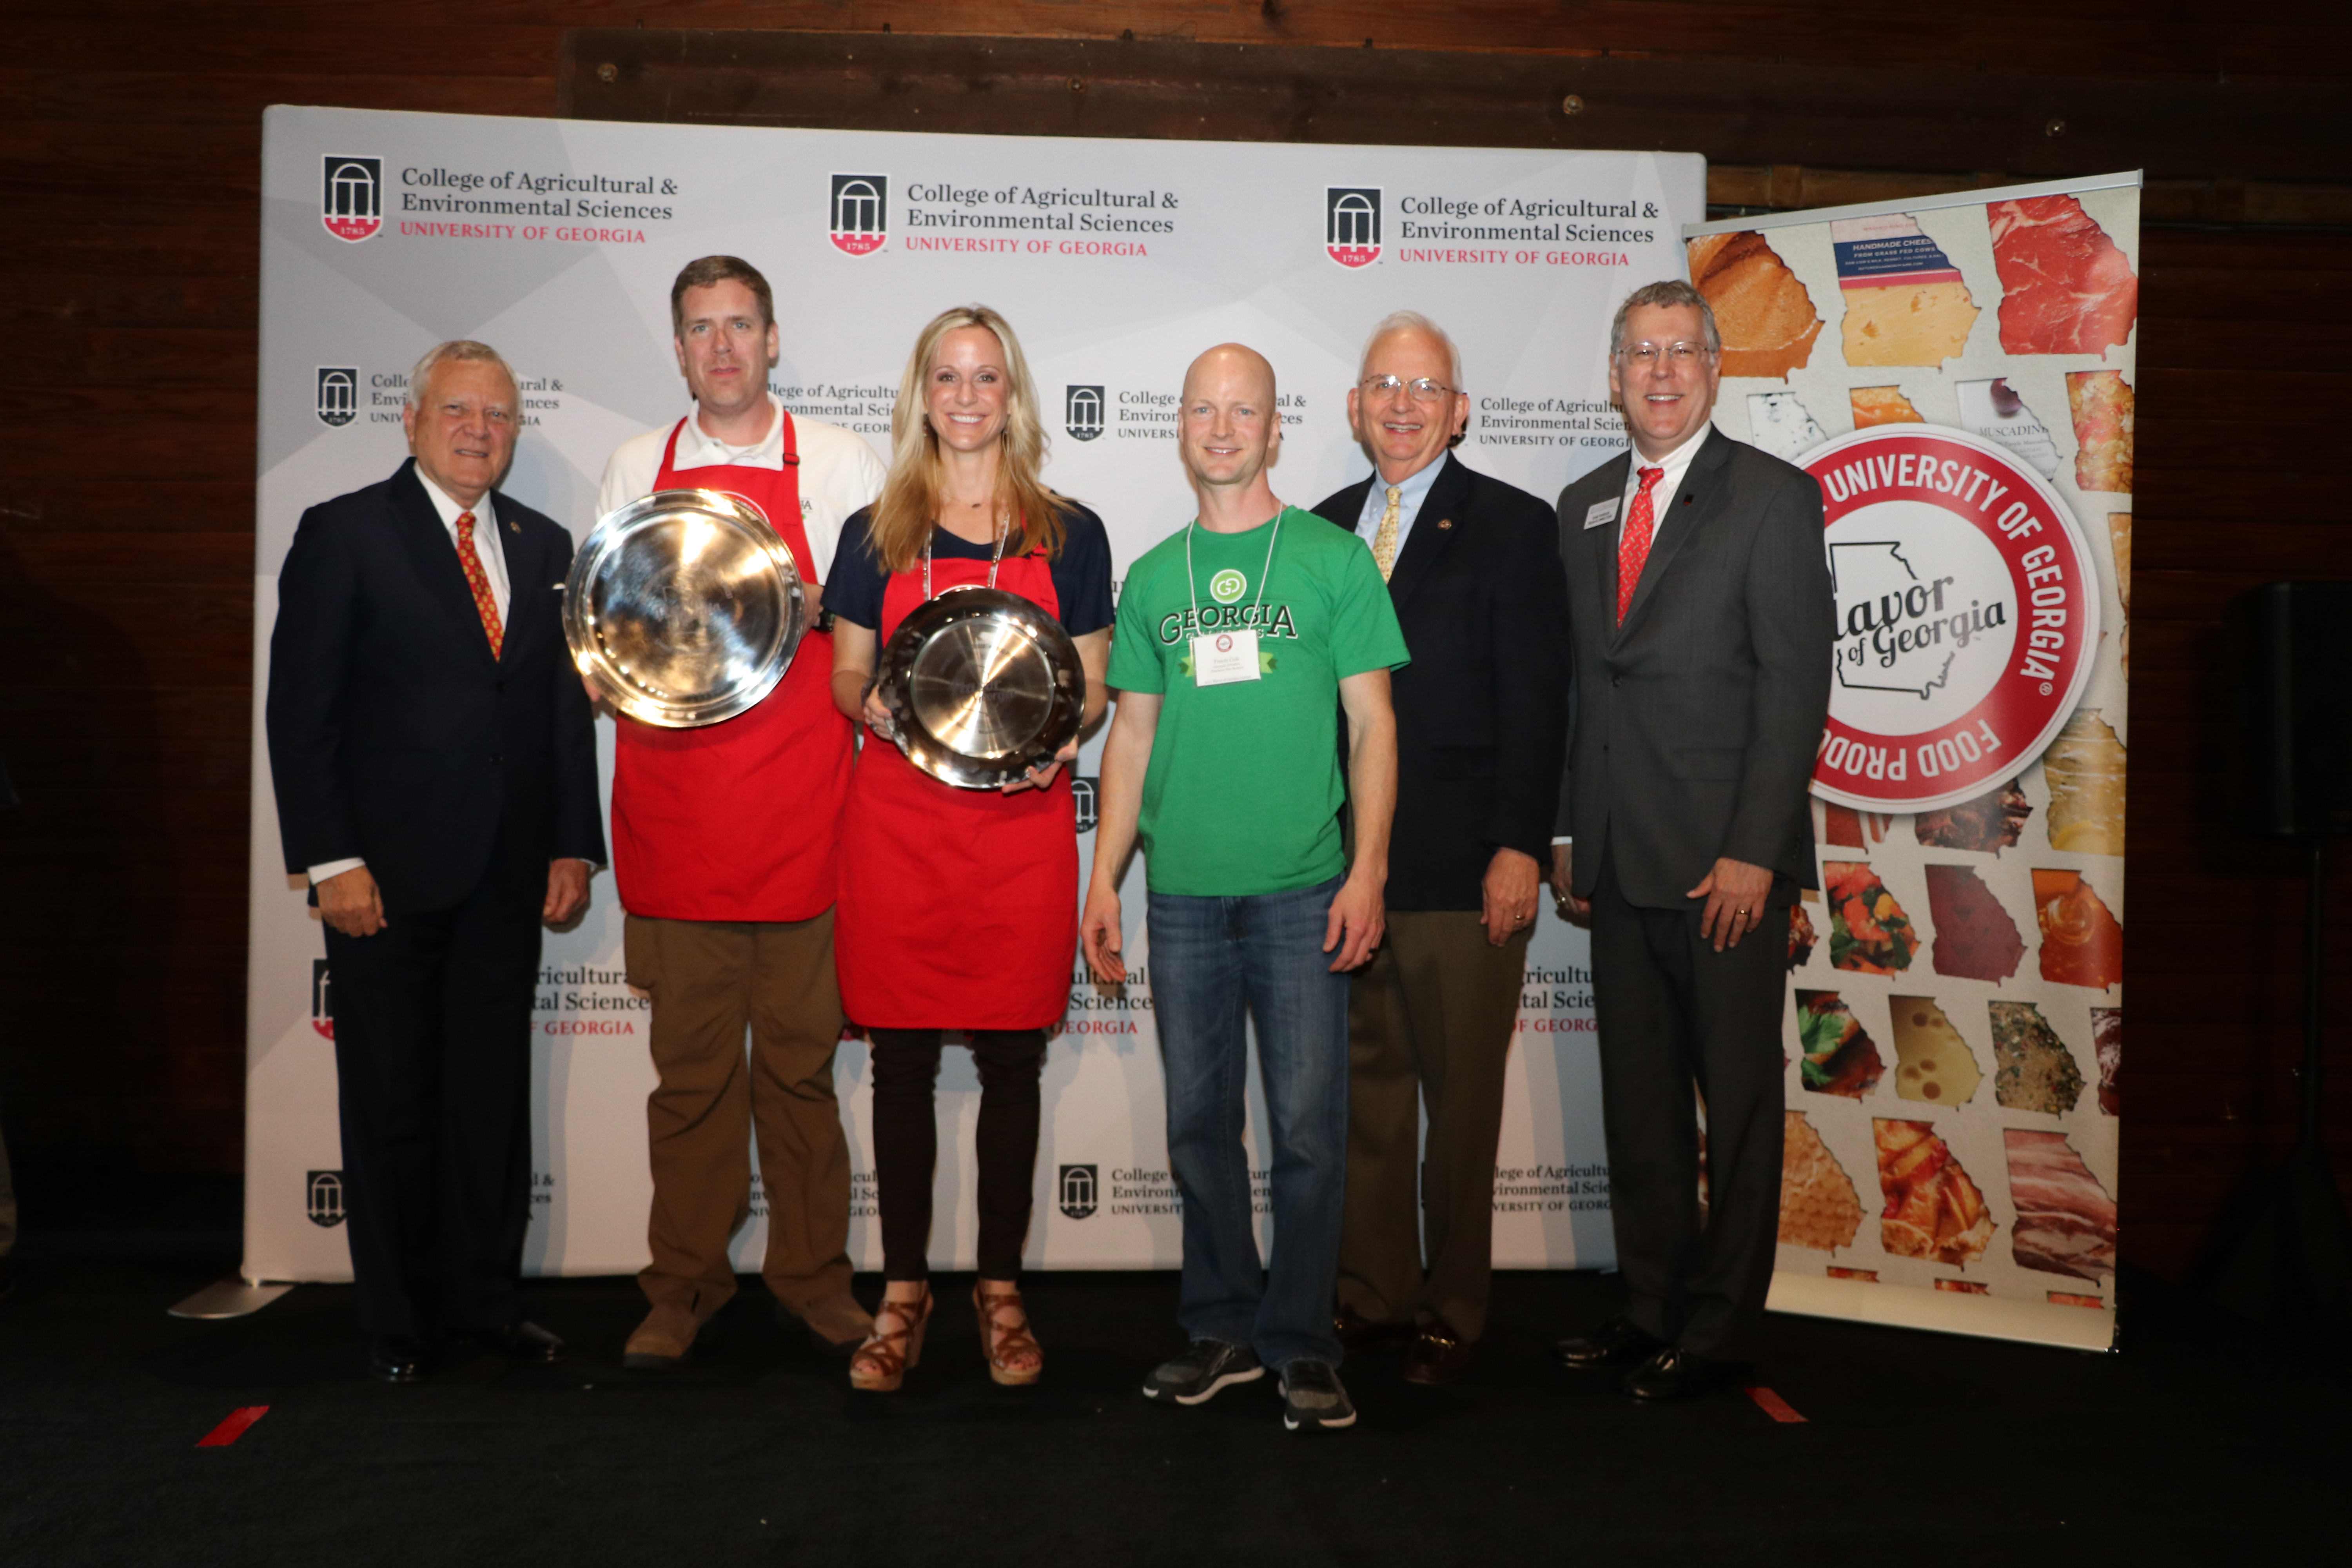 Governor Nathan Deal, from left, congratulates Harry and Jaime Foster and Travis Cole, of Georgia Grinders, who are accompanied by Georgia Agriculture Commissioner Gary Black and College of Agricultural and Environmental Sciences Dean and Director Sam Pardue. Georgia Grinder's Premium Nut Butters' Pecan Butter won the grand prize at the University of Georgia's Flavor of Georgia Food Product Contest.